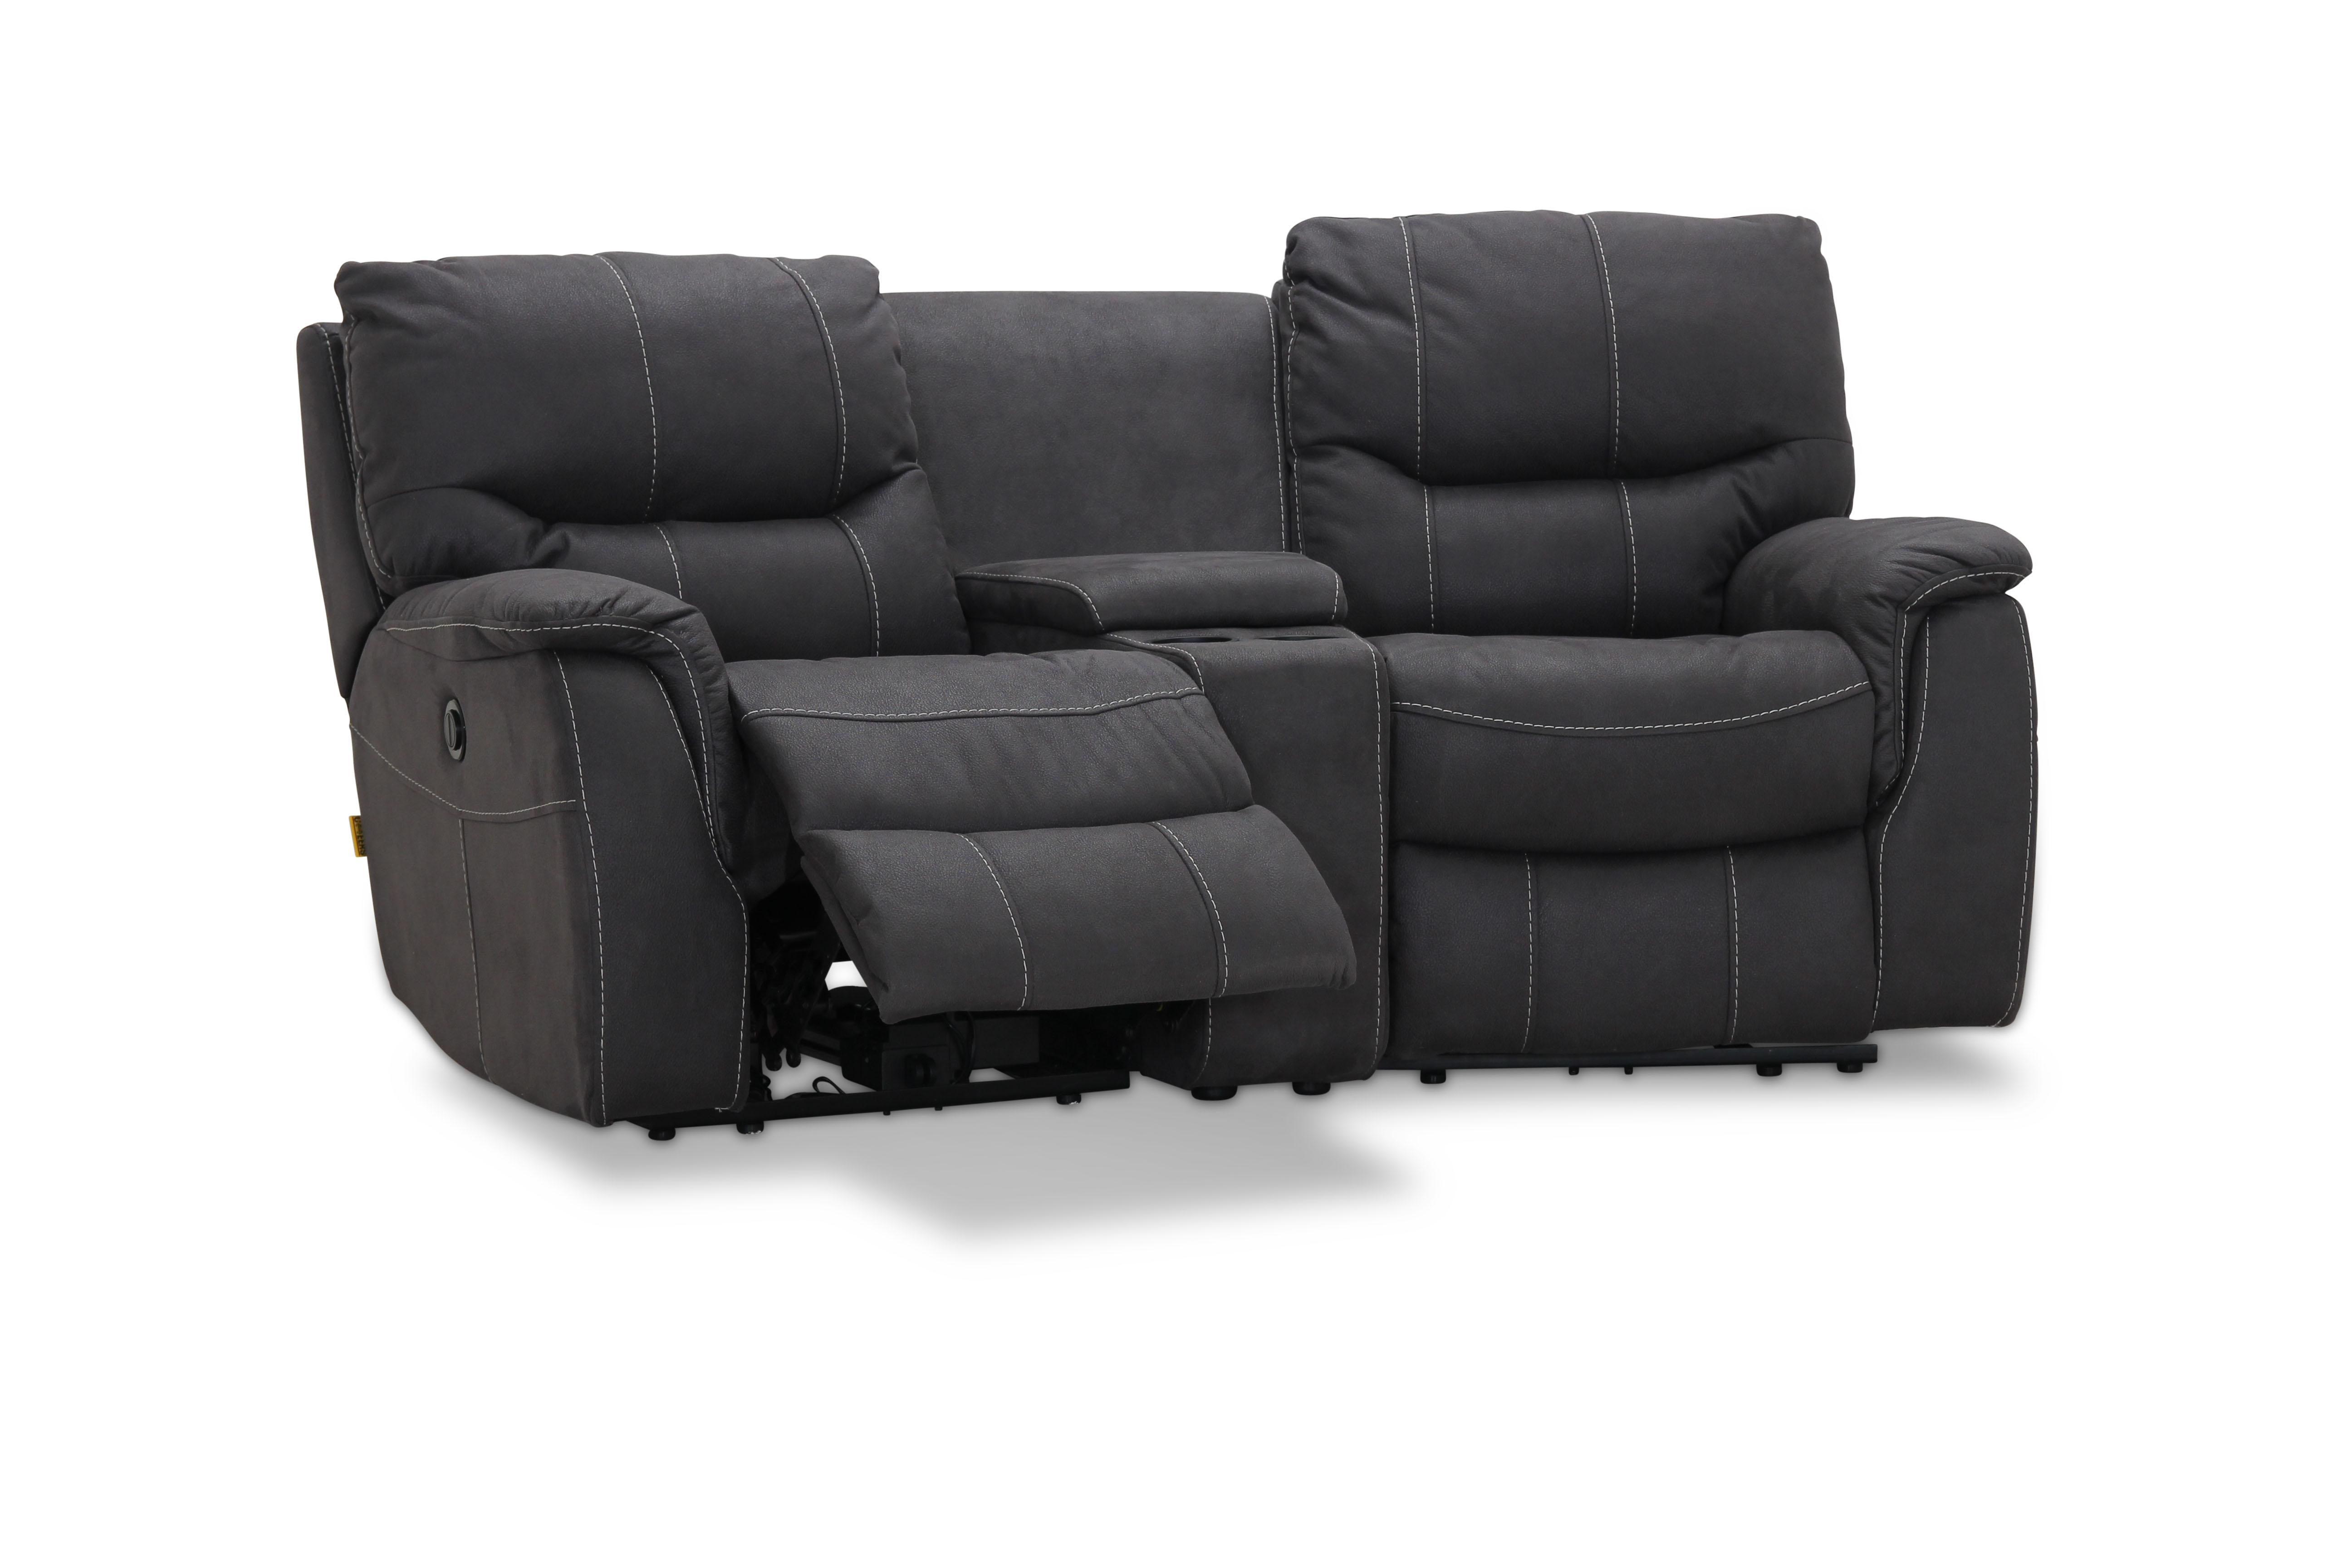 Colorado Recliner Bio 2-sits